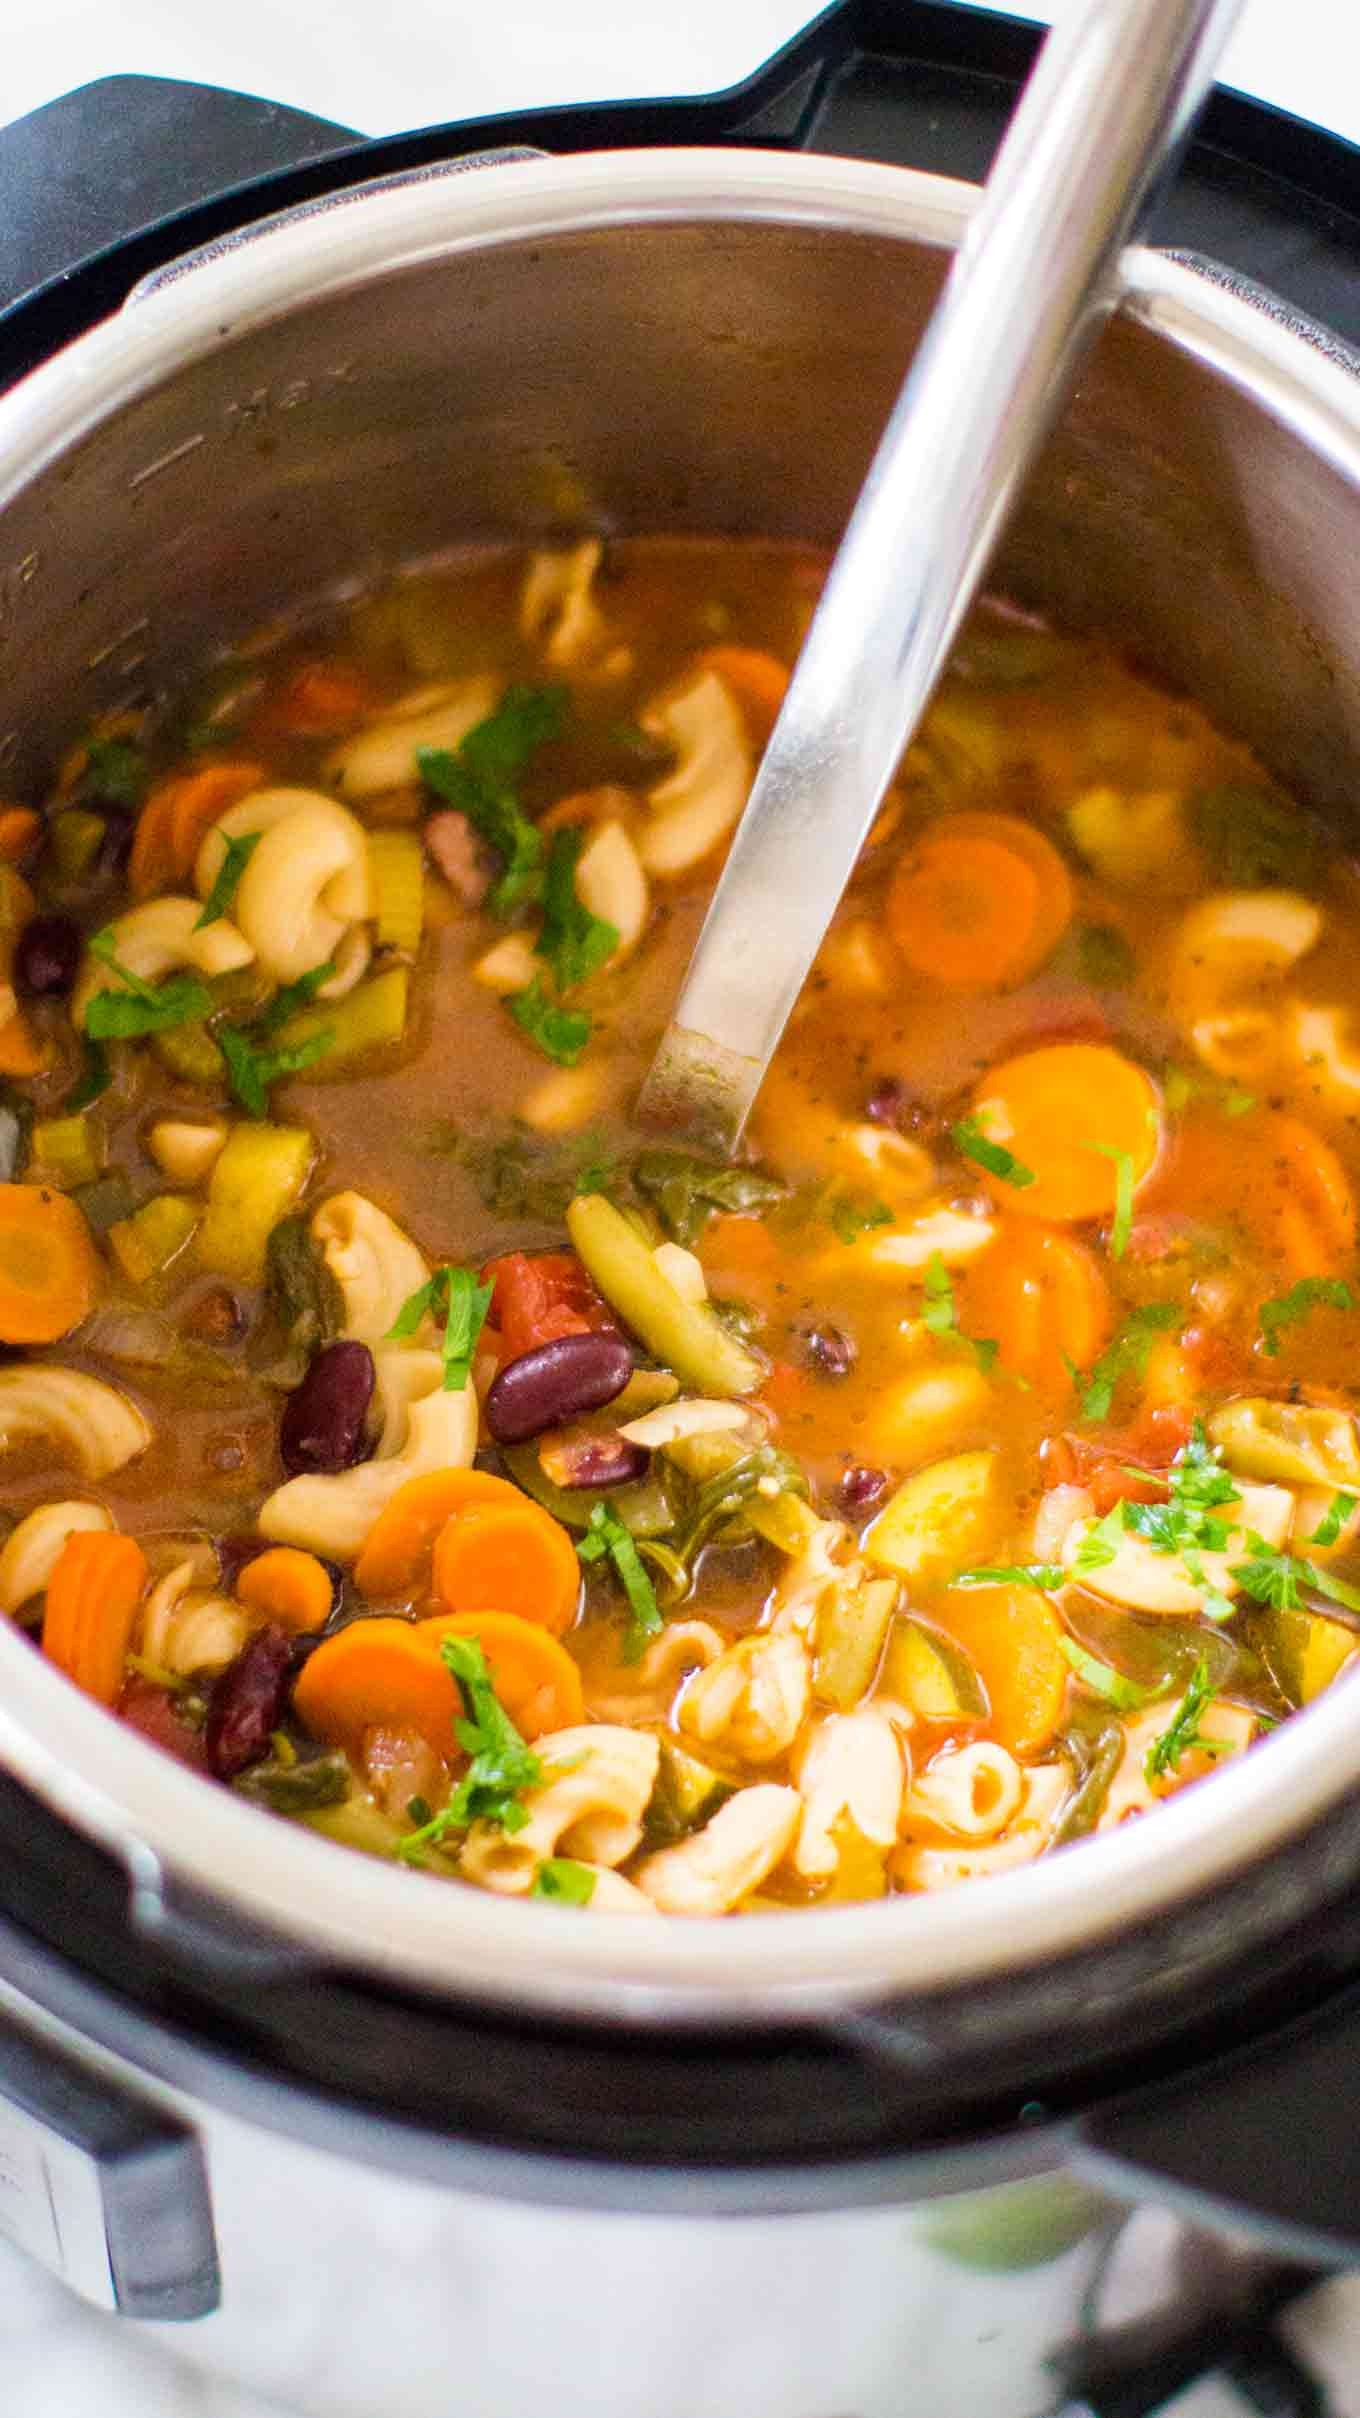 Instant Pot Soup Recipes Healthy  Instant Pot Minestrone Soup Sweet and Savory Meals